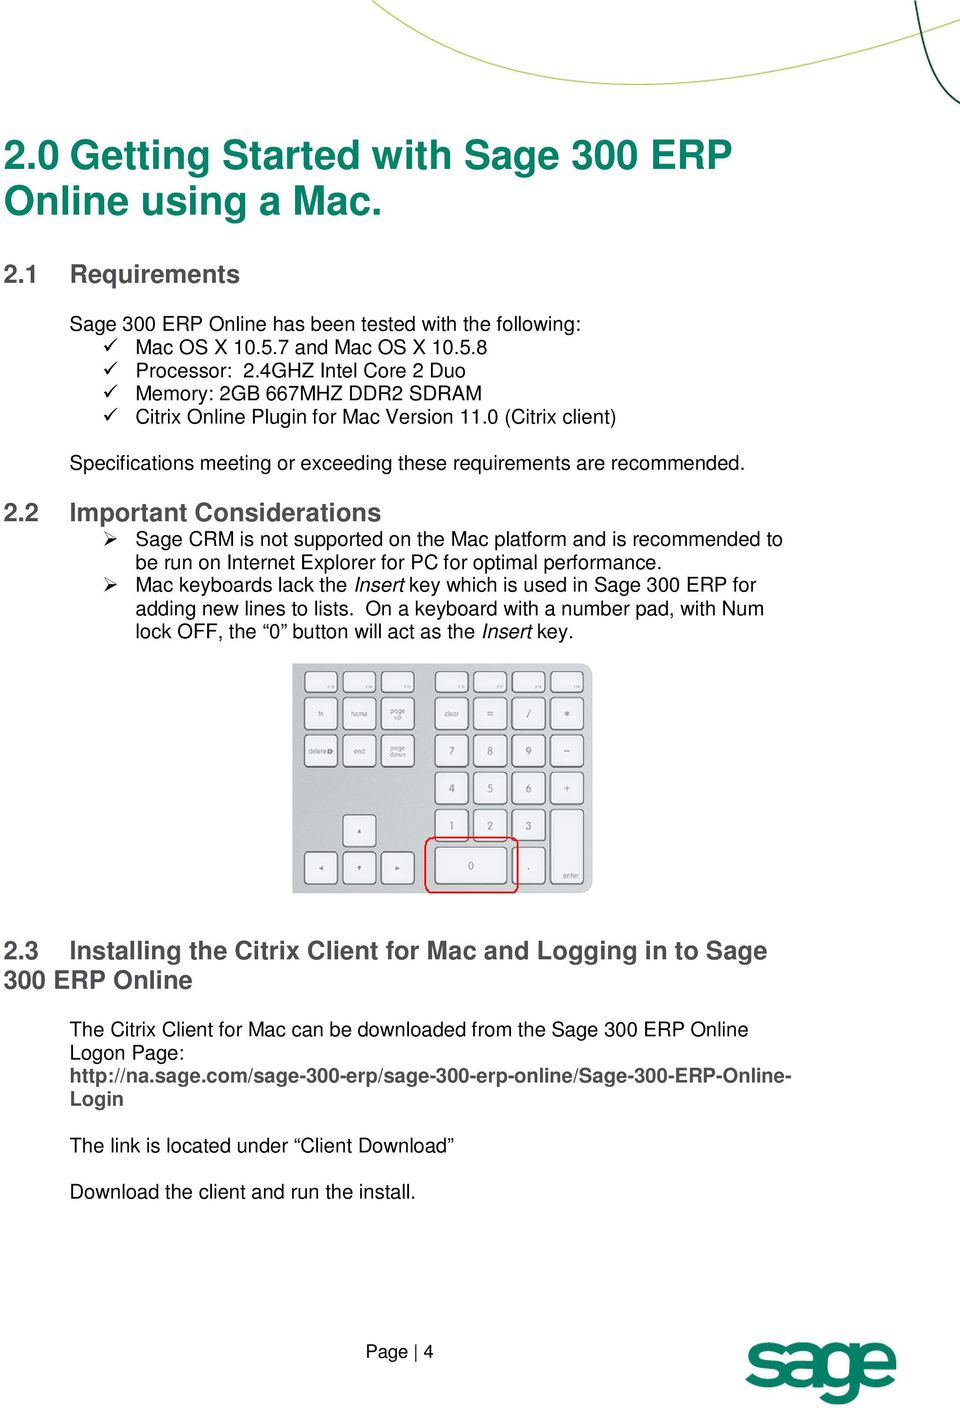 Mac keyboards lack the Insert key which is used in Sage 300 ERP for adding new lines to lists. On a keyboard with a number pad, with Num lock OFF, the 0 button will act as the Insert key. 2.